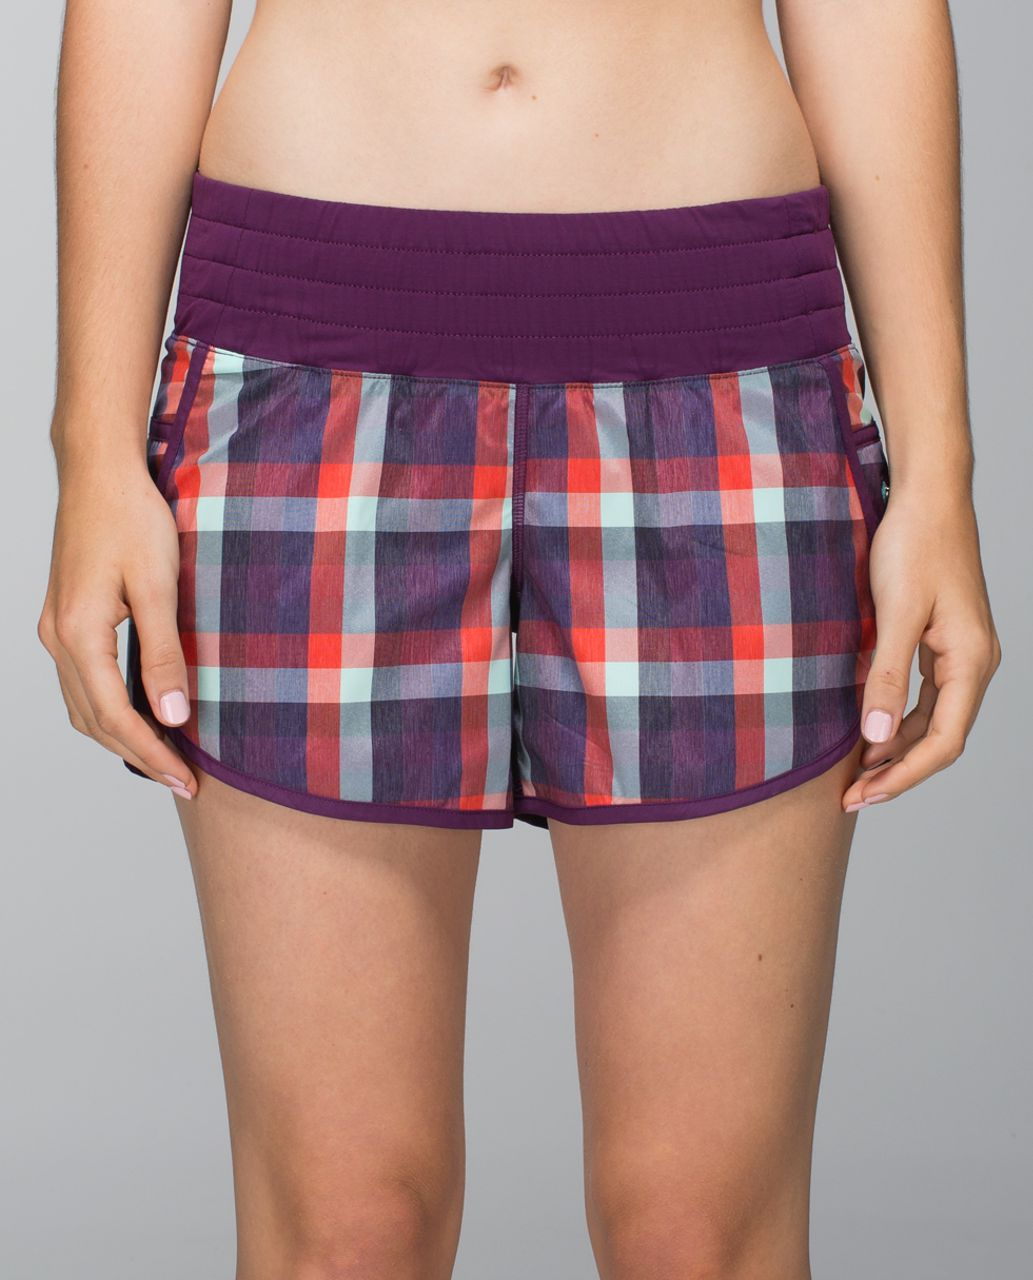 Lululemon Tracker Short II *2-way Stretch - Wheezy Check Multi Heathered Berry Yum Yum / Berry Yum Yum